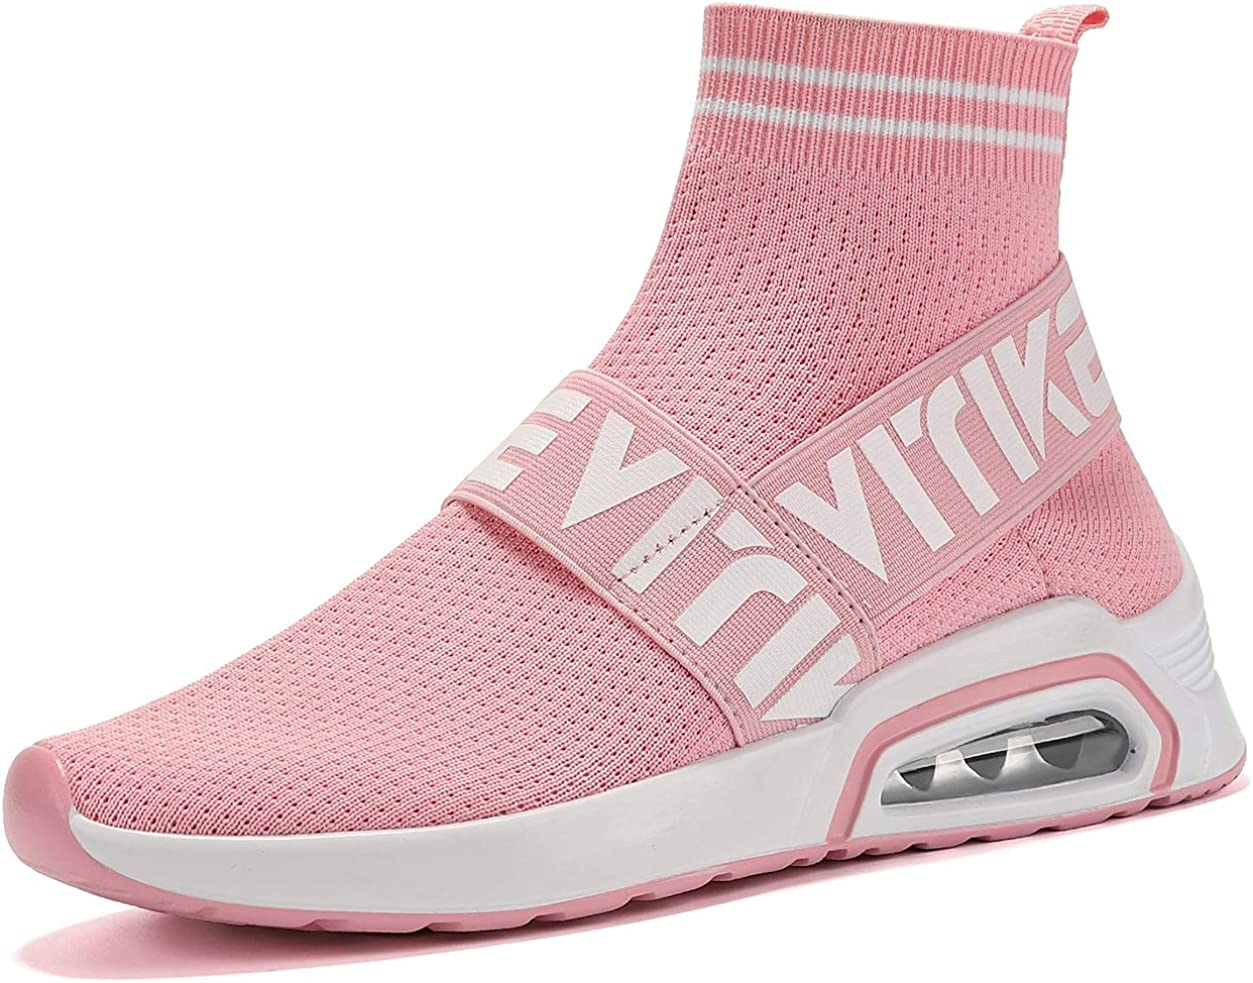 Women's Walking Shoes Running Shoes Socks Platform Fashion Mesh Sneakers Air Cushion Athletic Gym Casual Loafers Dance Hip-hop Shoes